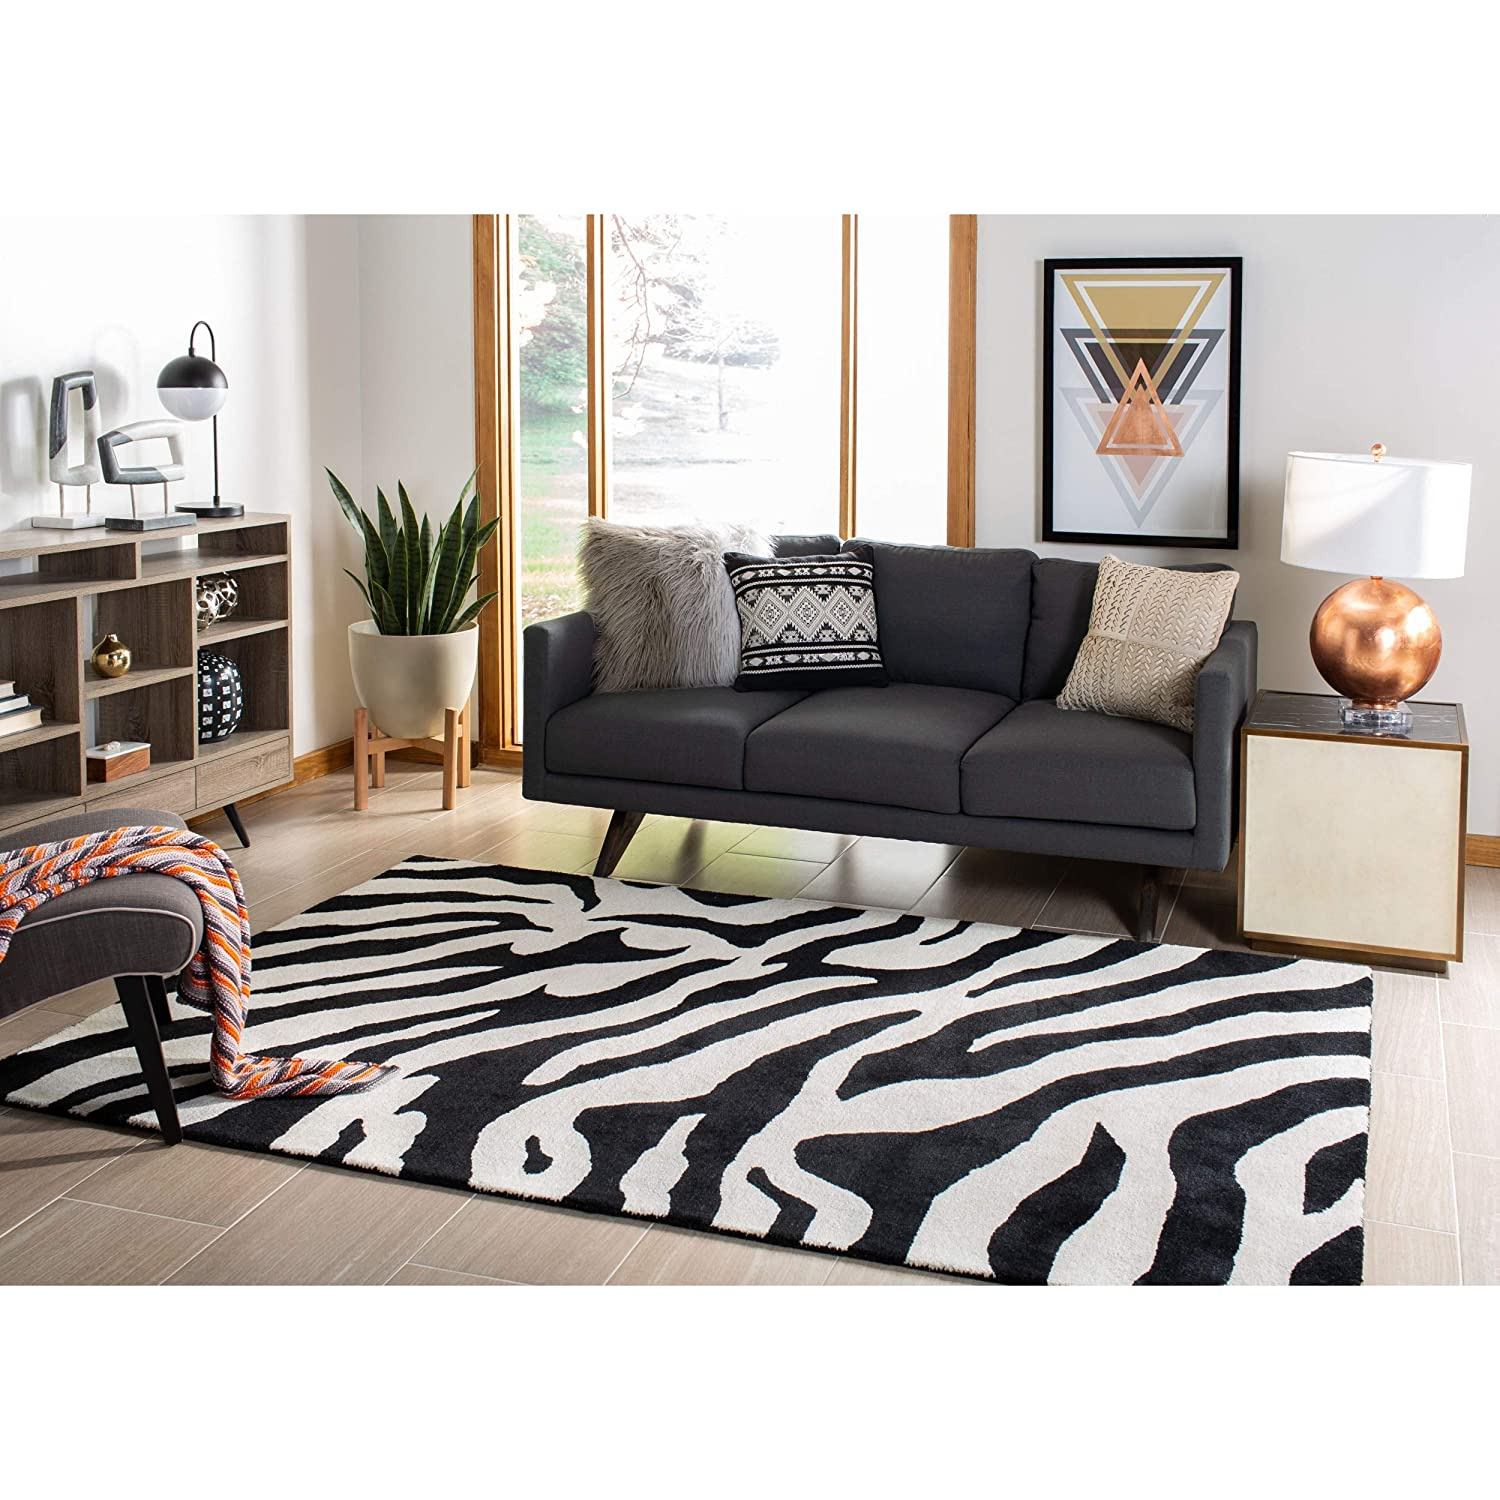 Safavieh Soho Collection SOH717A Handmade White and Black Premium Wool Area Rug (6 x 9)